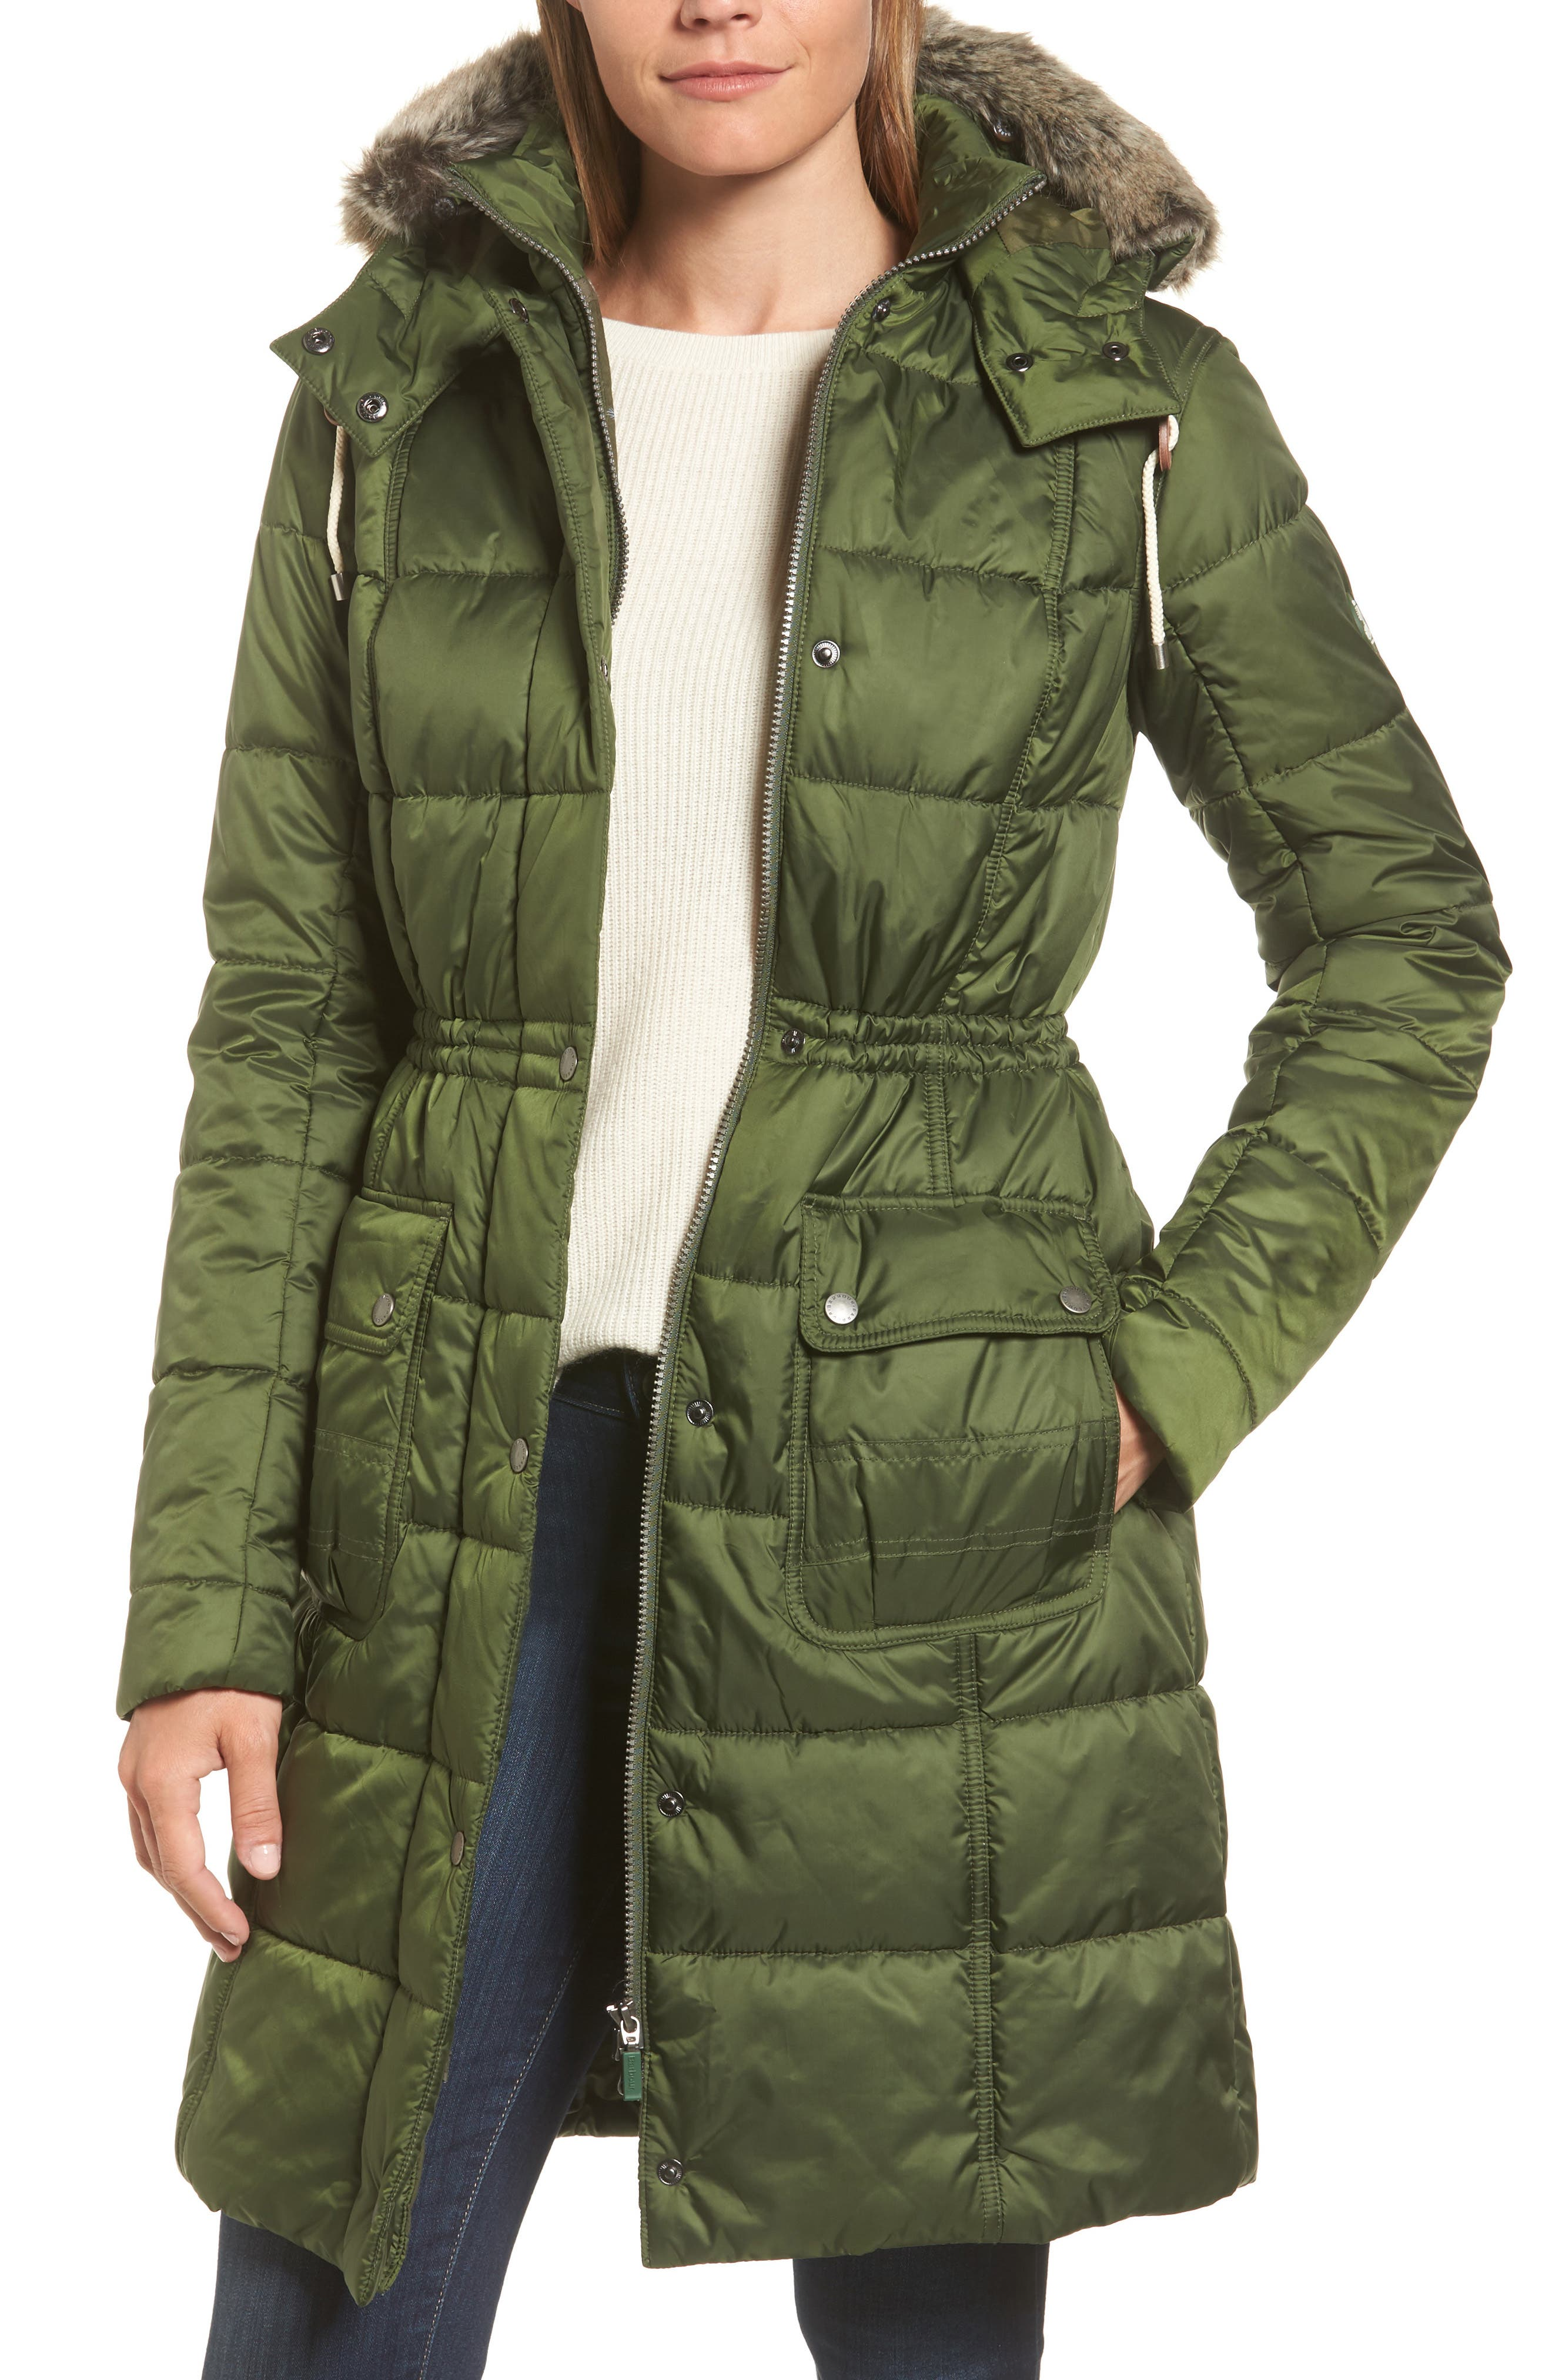 Alternate Image 1 Selected - Barbour Winterton Water Resistant Hooded Quilted Jacket with Faux Fur Trim